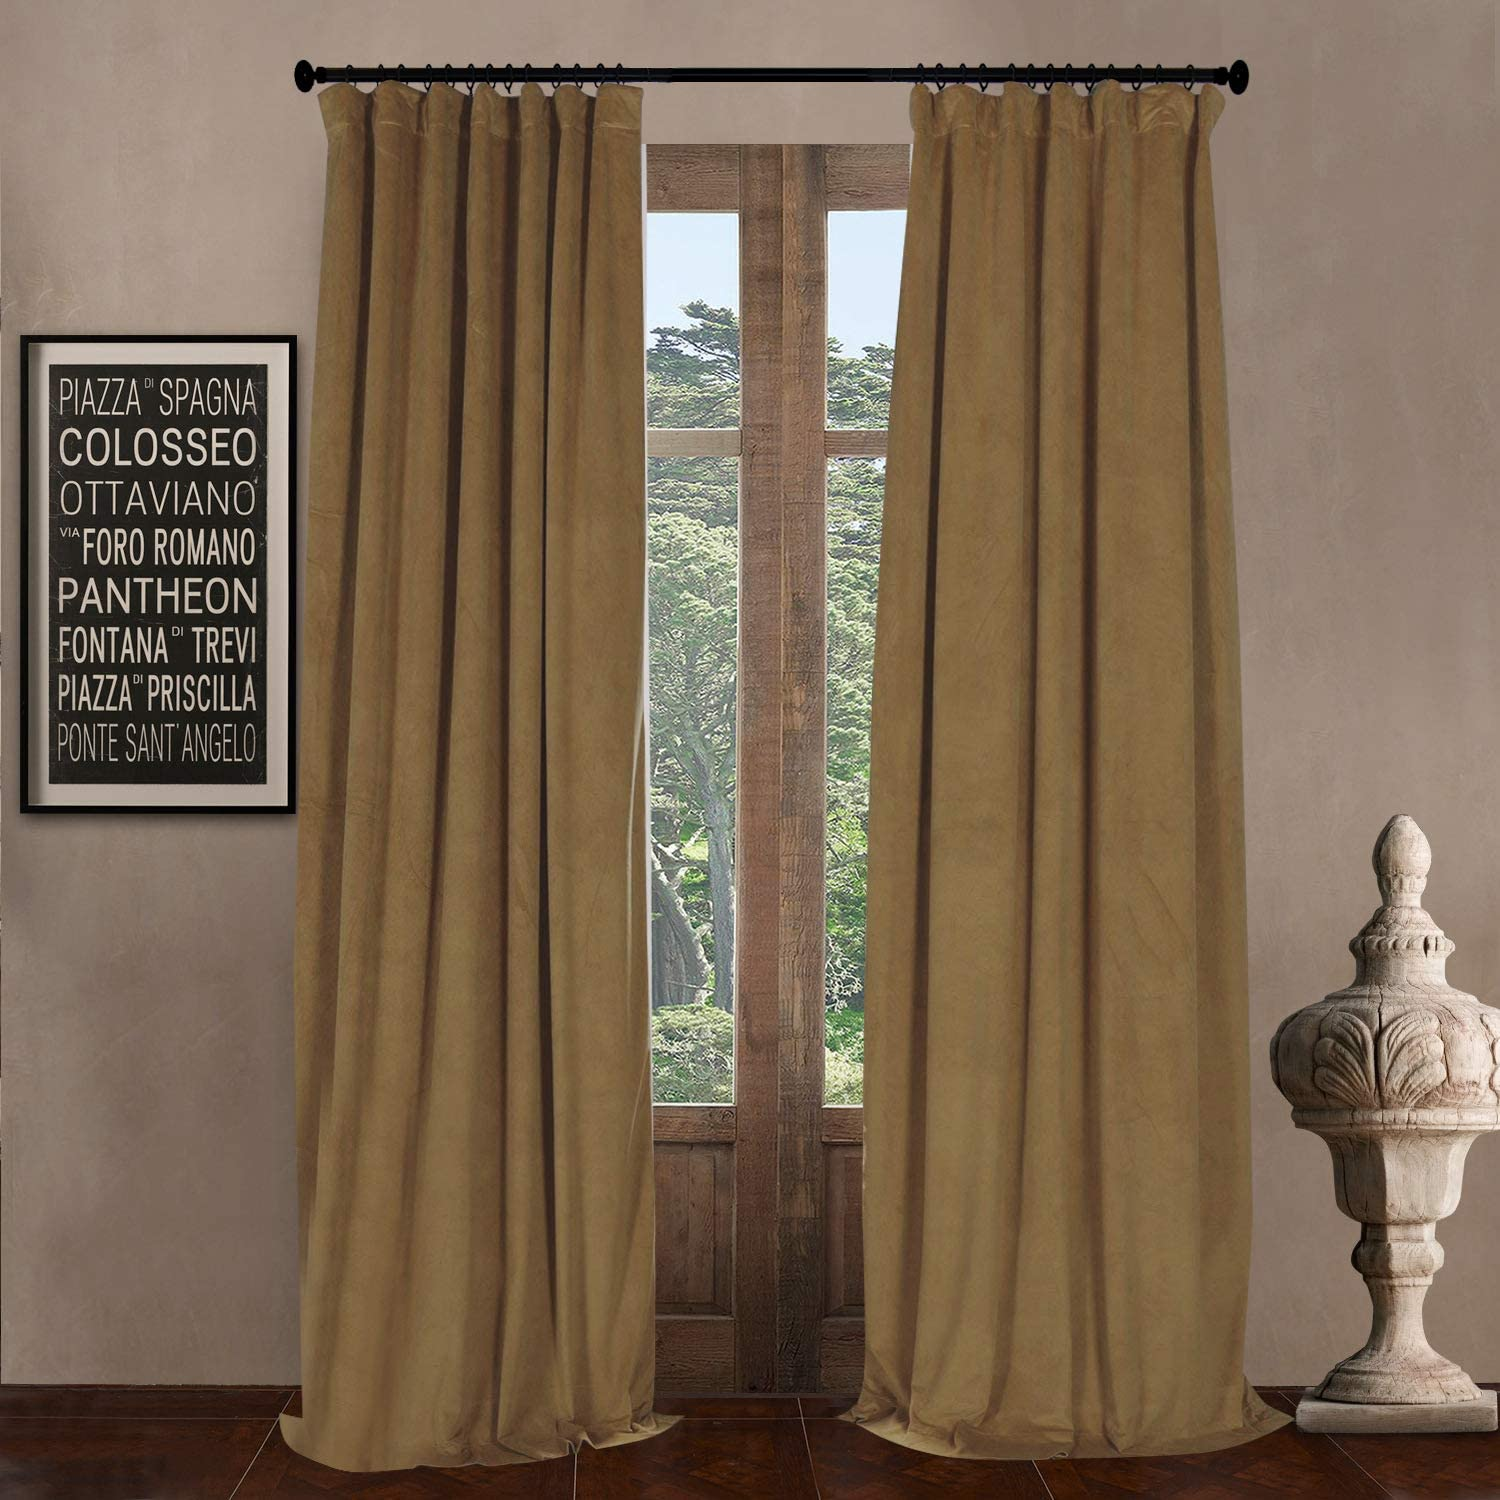 100  W x 96  L (set of 2 Panels) Pinch Pleat 90% White Lining Blackout Velvet Solid Curtain Thermal Insulated Patio Door Curtain Panel Drape For Traverse Rod and Track, Amber gold Curtain